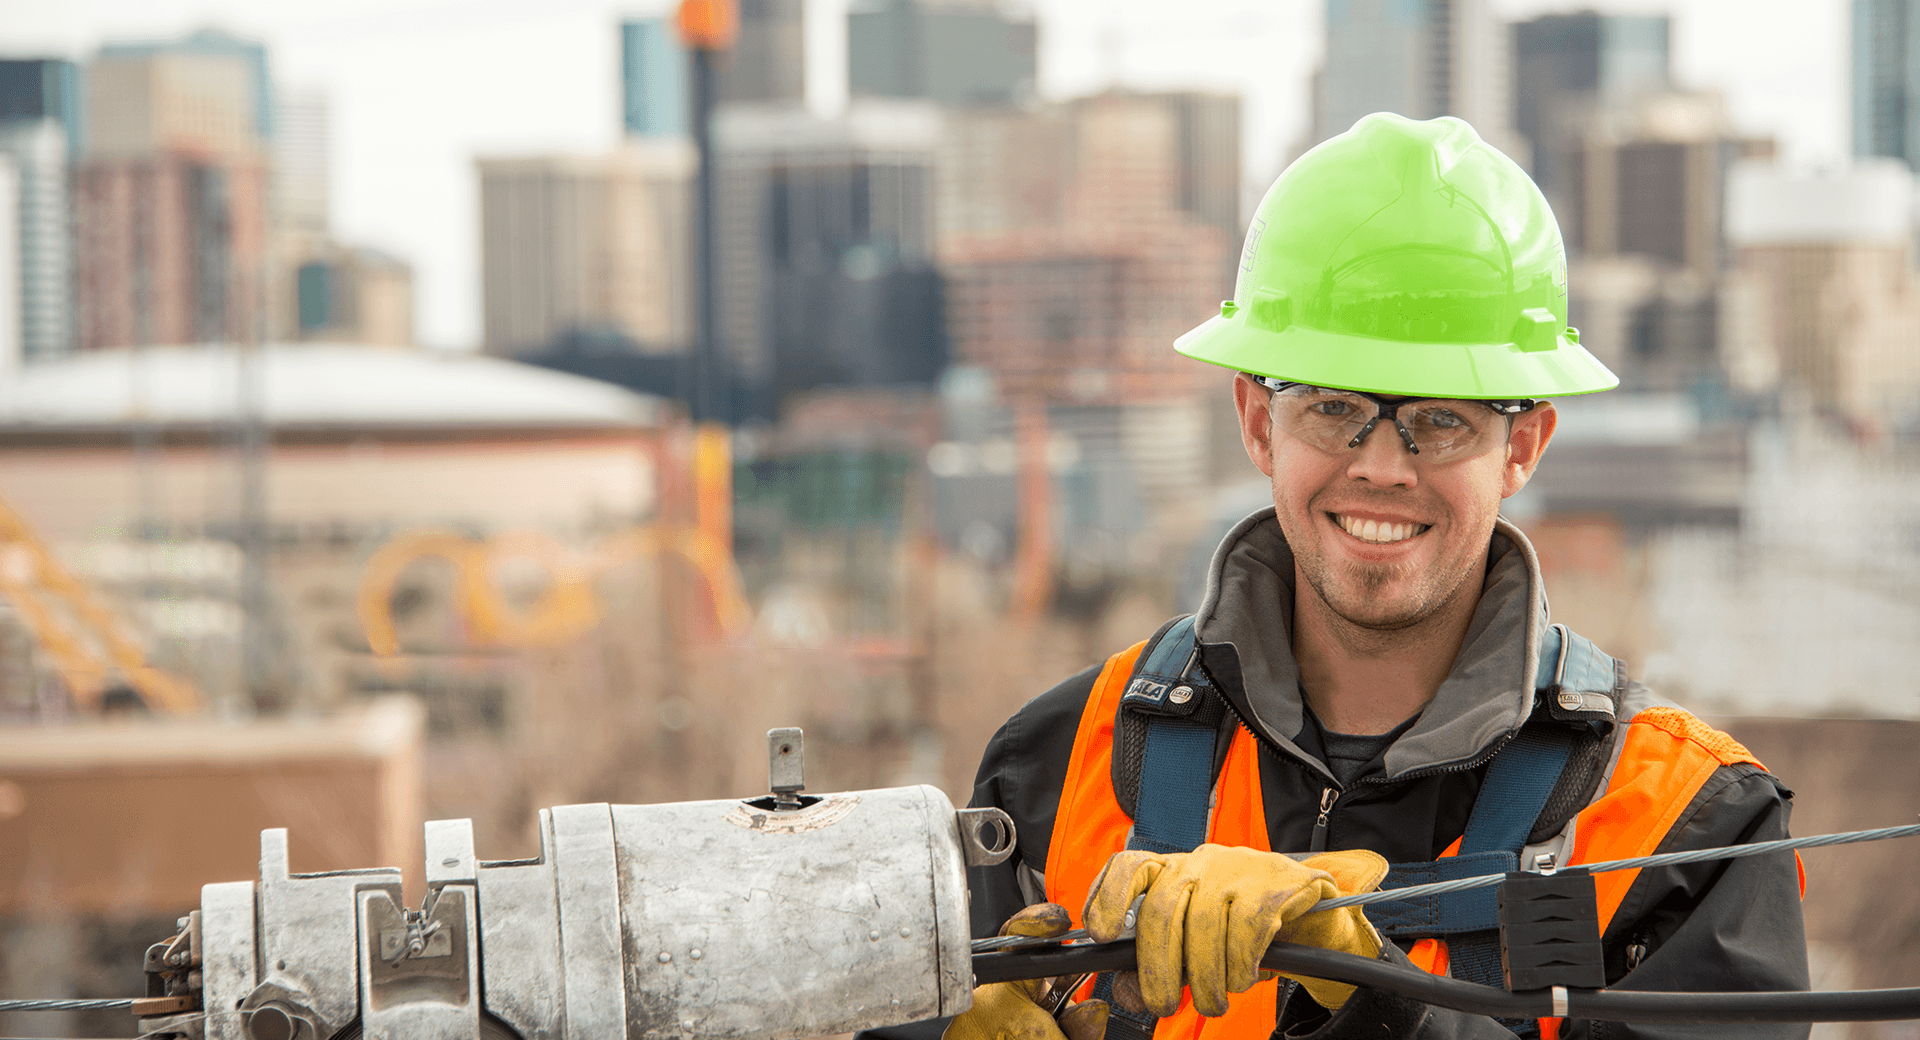 Smiling worker with green hard hat connecting telephone wire in front of a city skyline.